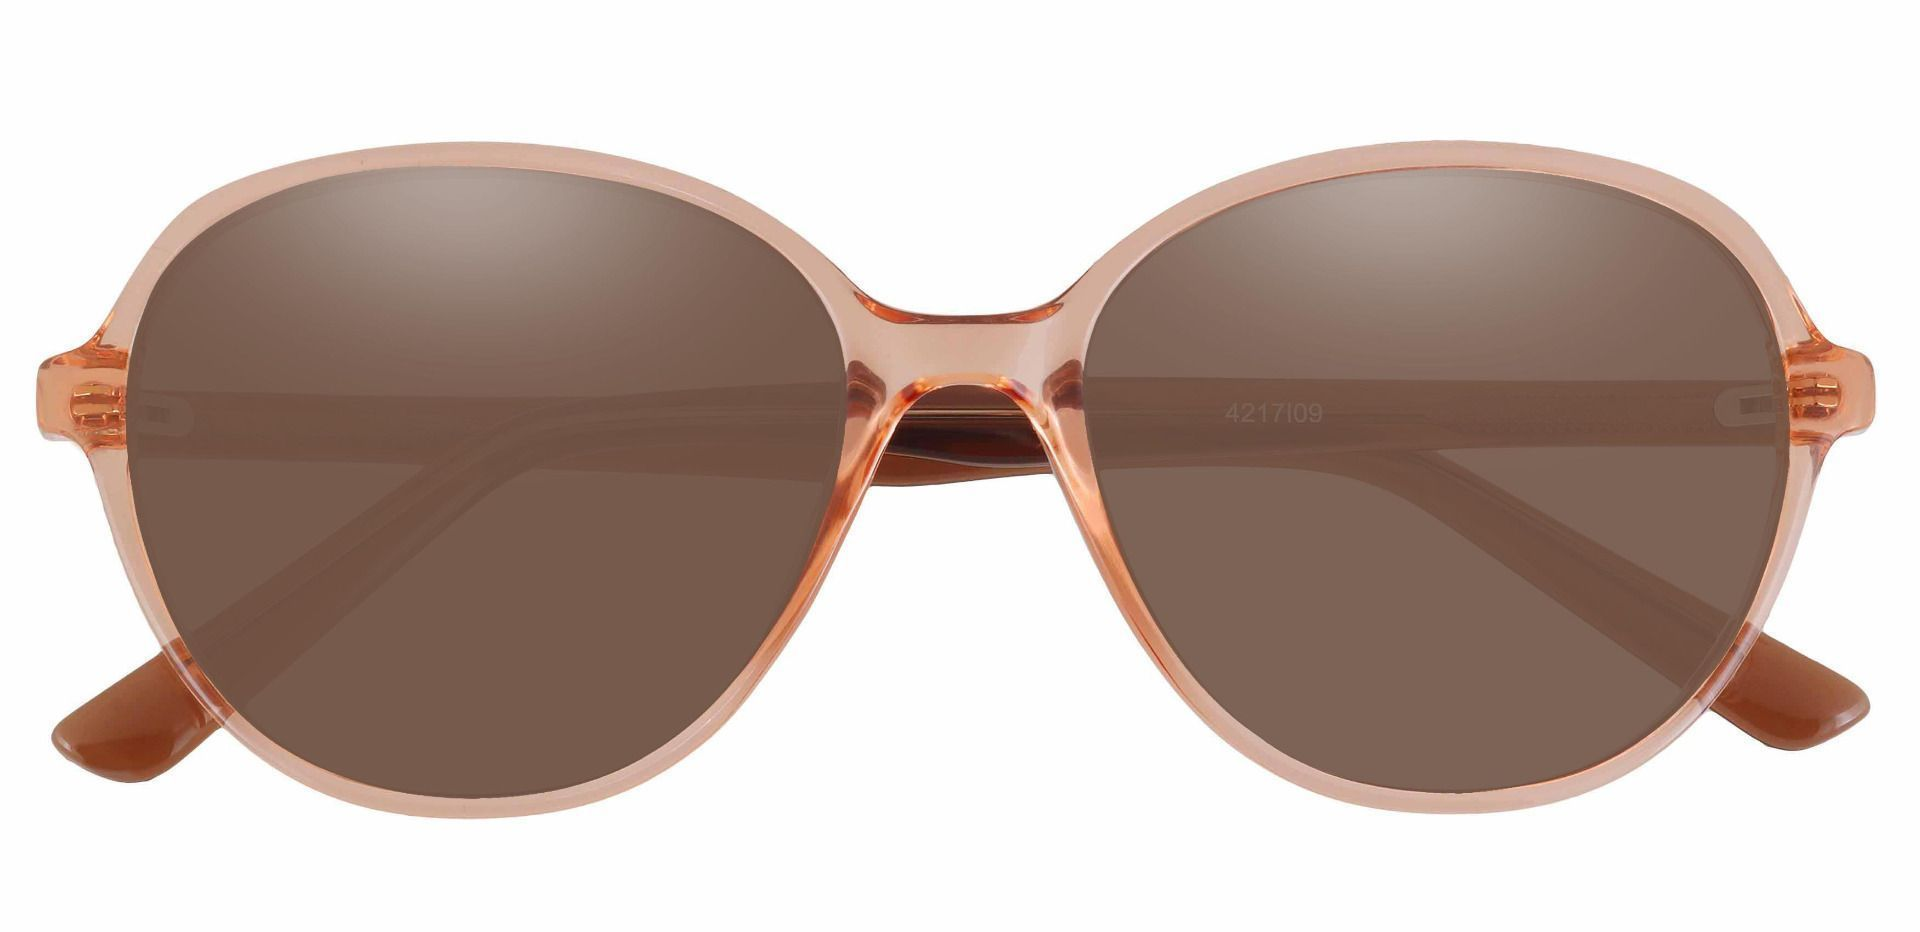 Luella Oval Prescription Sunglasses - Orange Frame With Brown Lenses